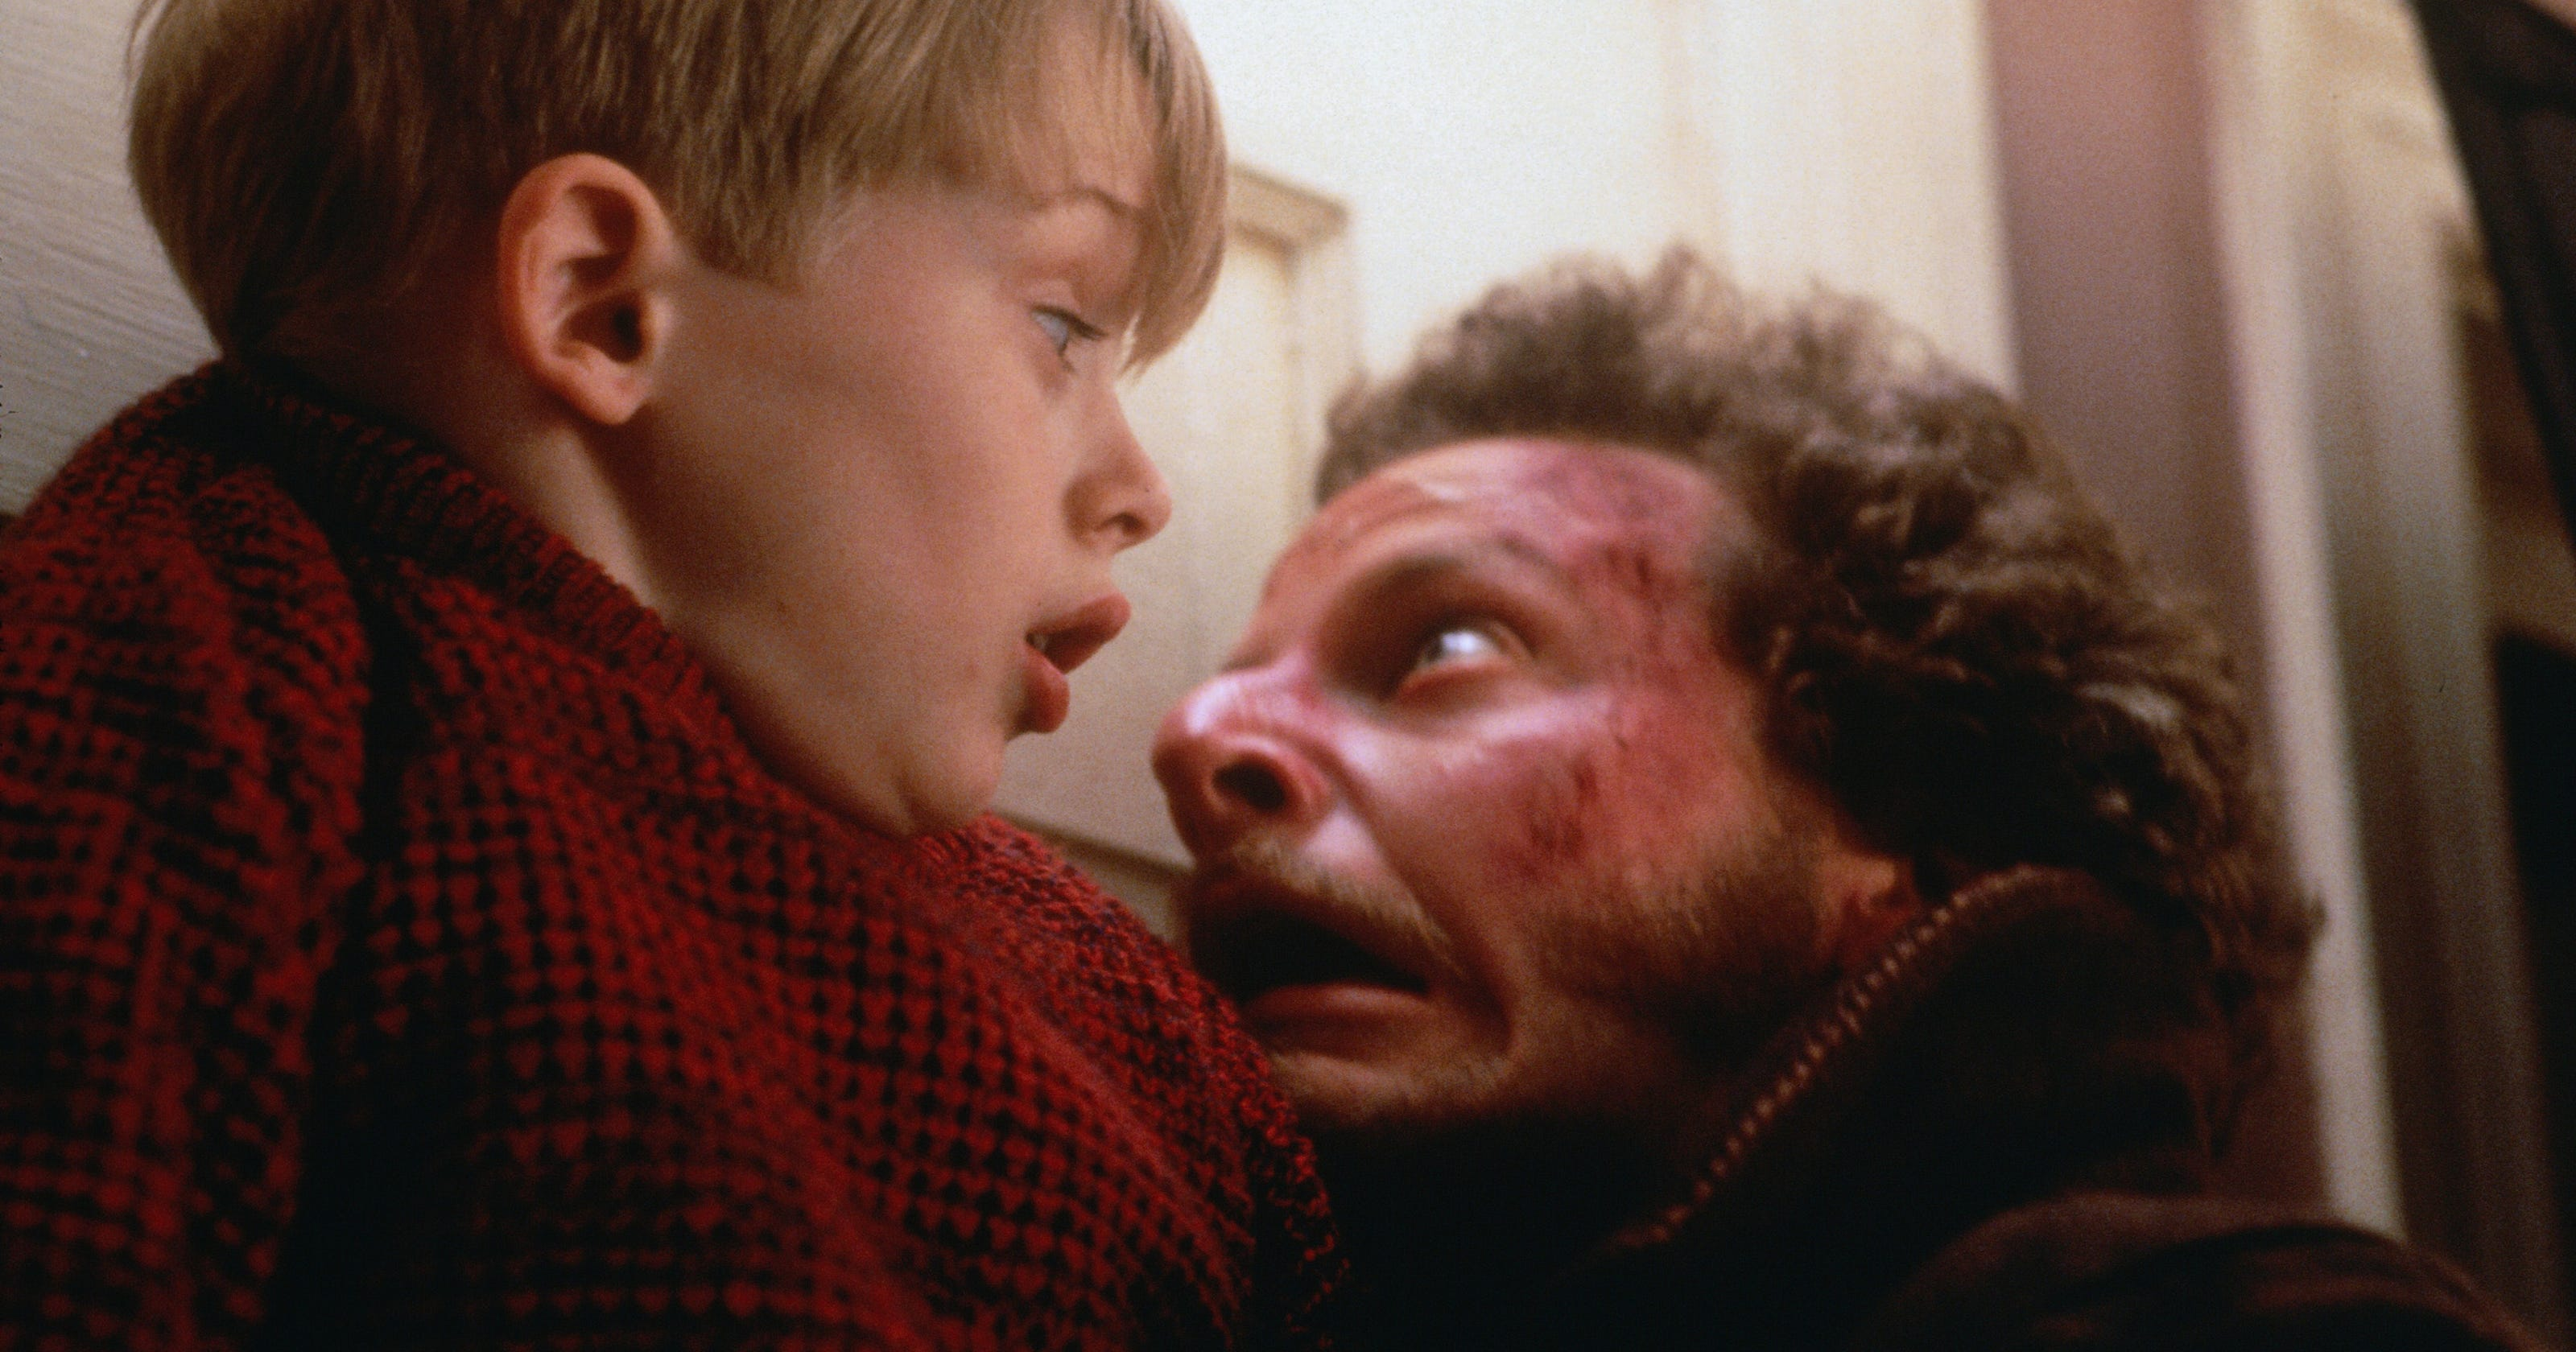 Home Alone Back In Theaters For Anniversary